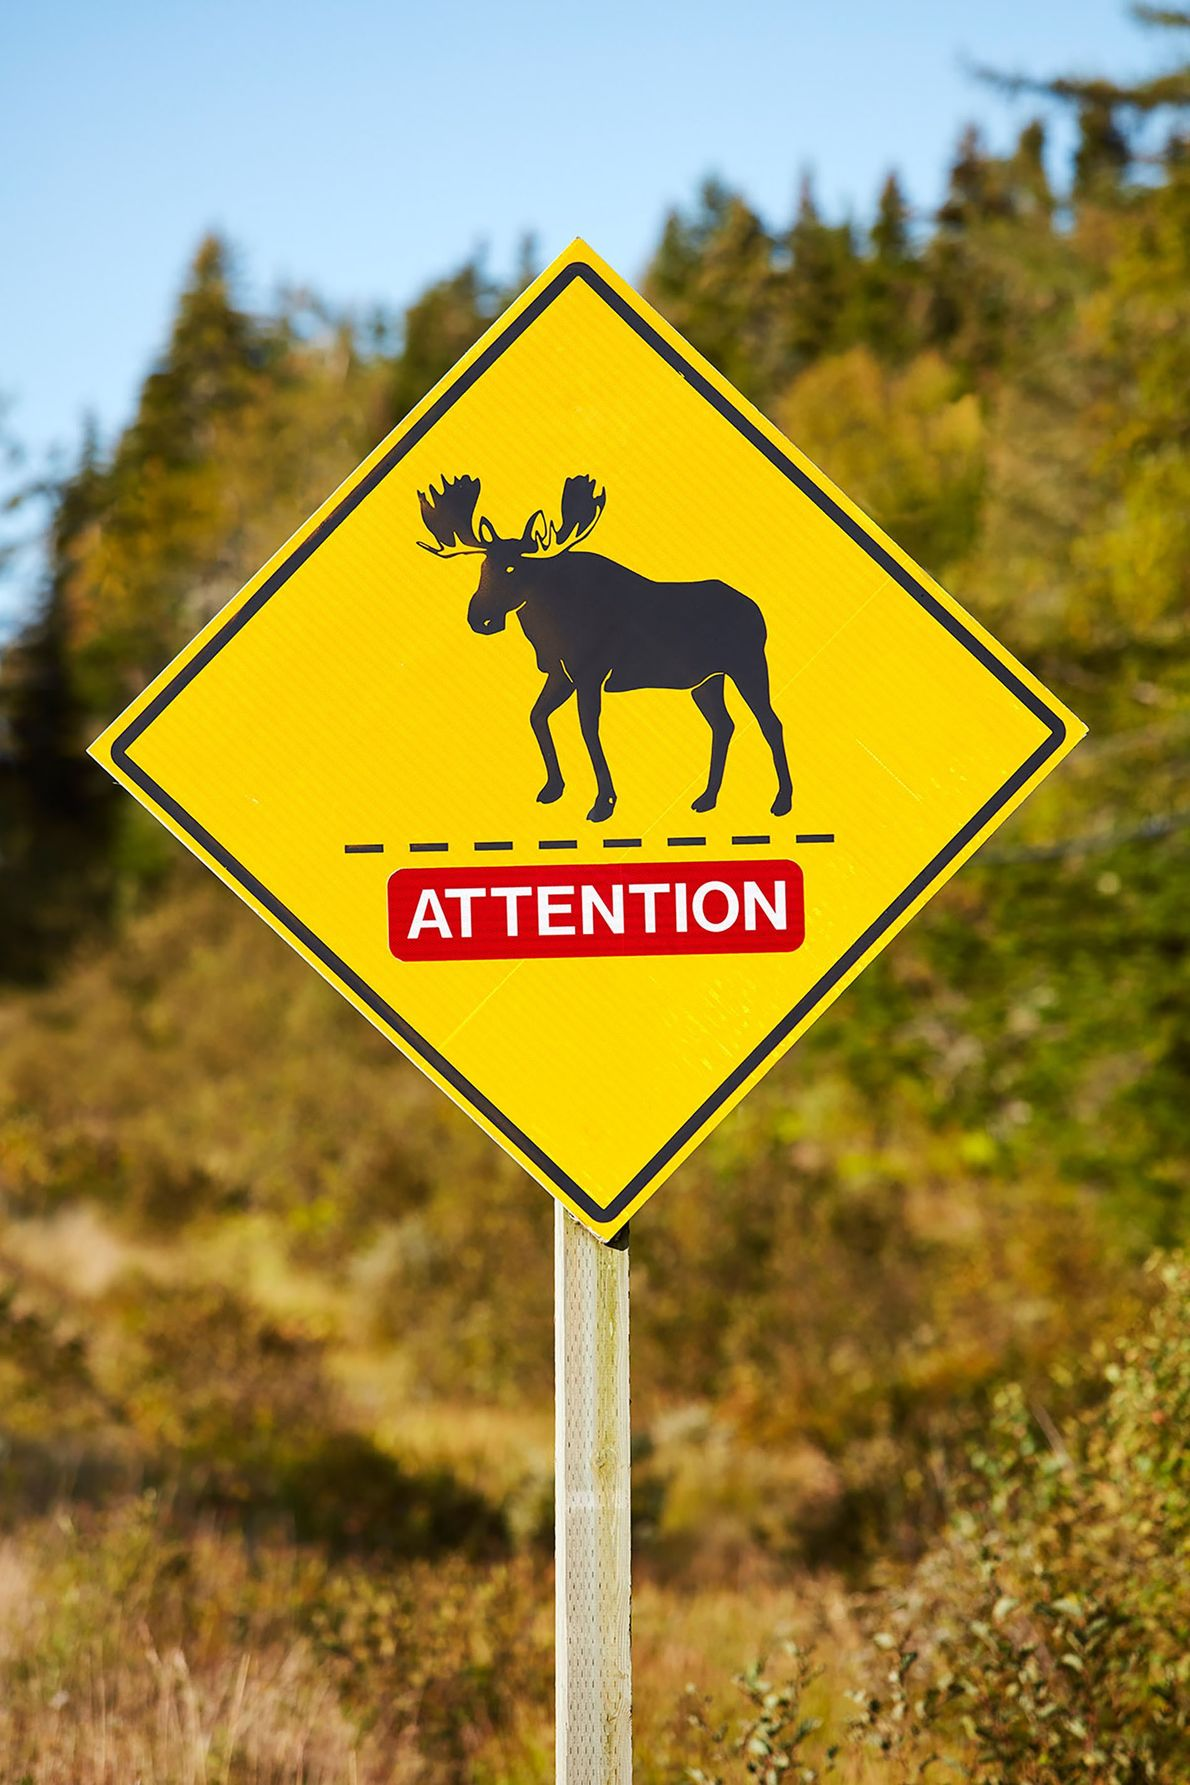 Warning moose signs can be found along the roads in New Brunswick.